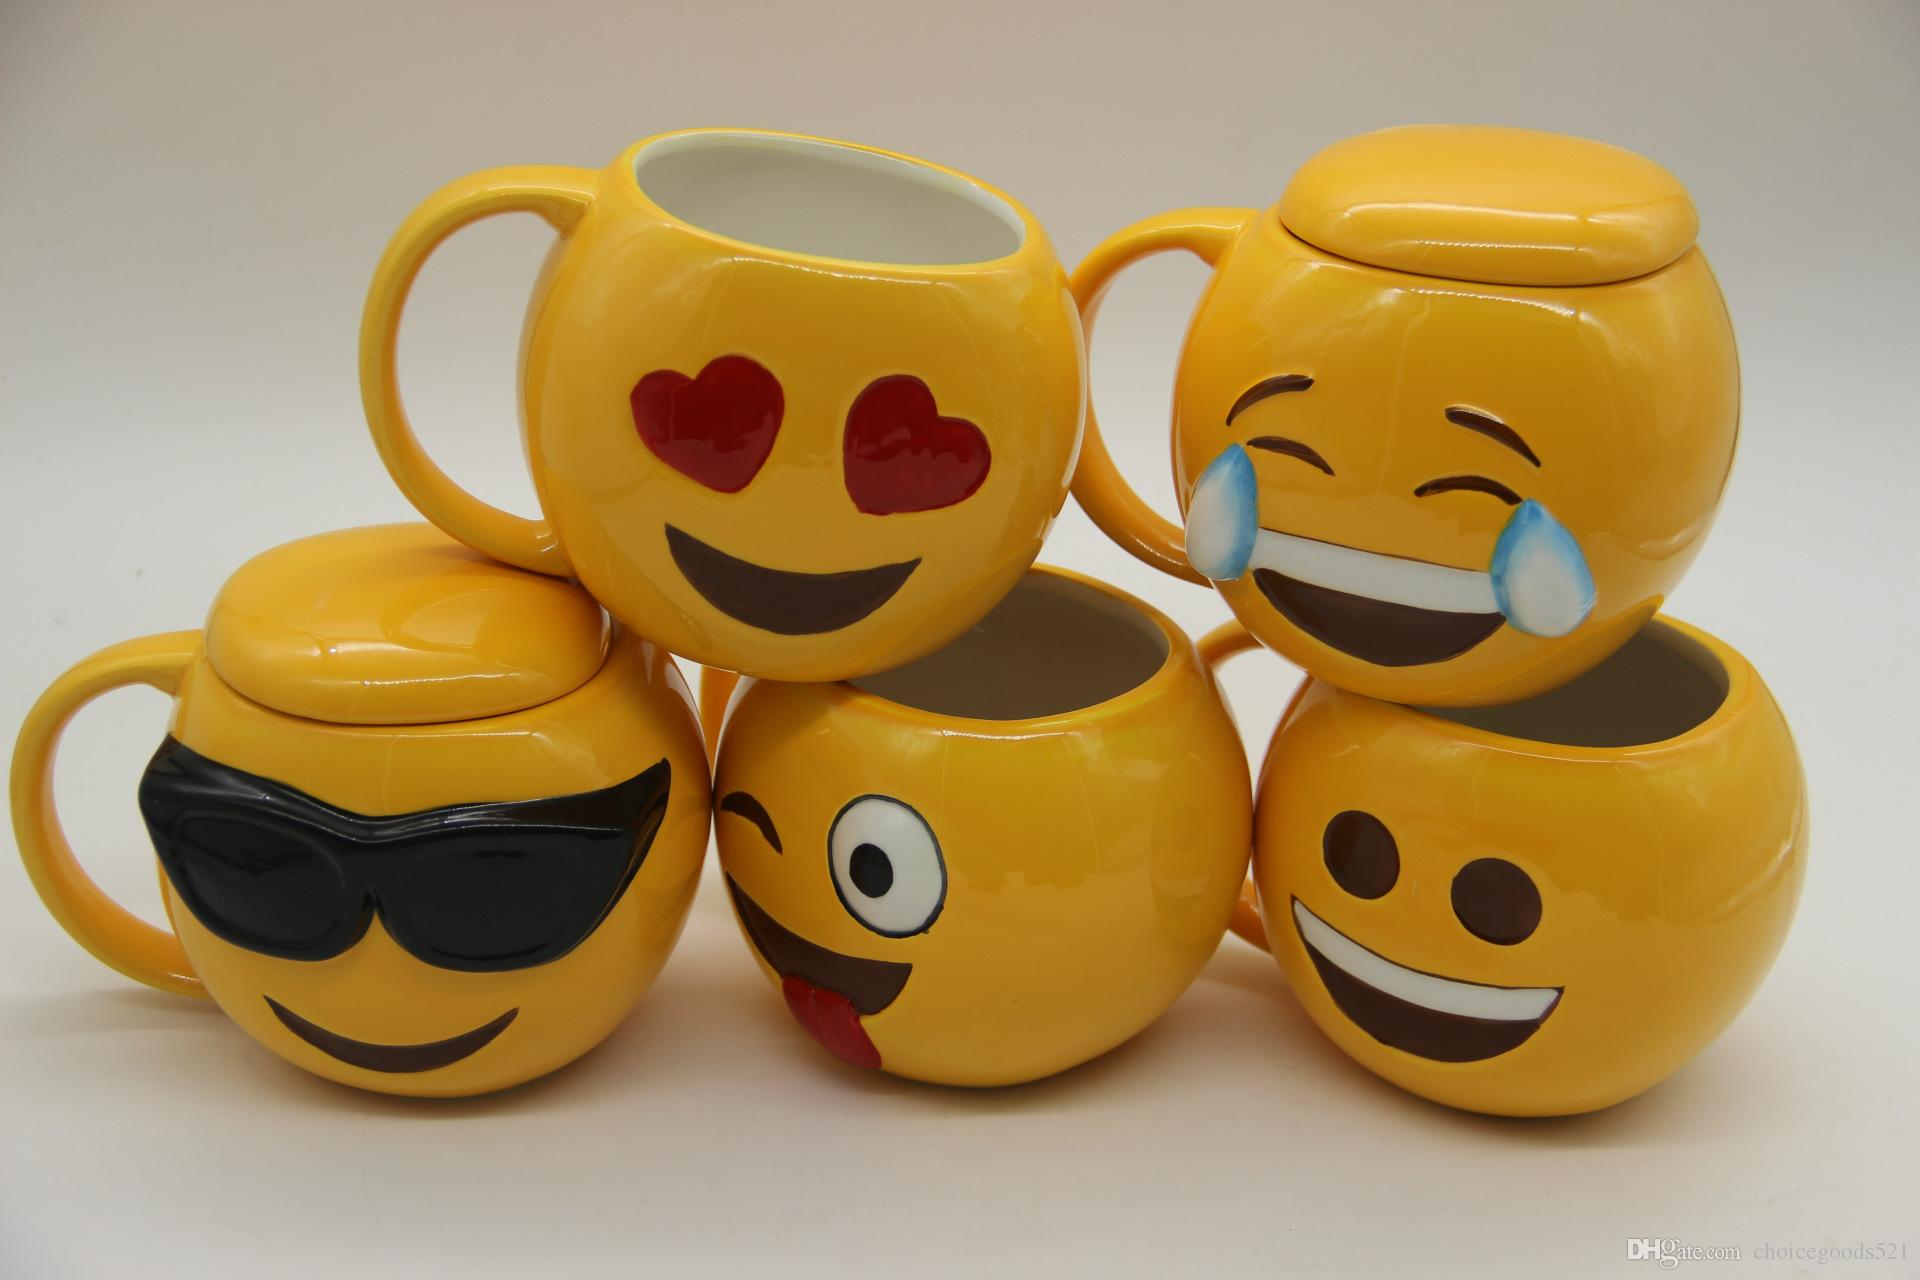 Supple Sad Couple Mugs Coffee Cups From Store Wholesale Dishes Utensils At Get Designs Get Designs Smiling Face Emoji Mug Porcelain Poop Shit Cupcartoon Amused furniture Coffee Cups Design